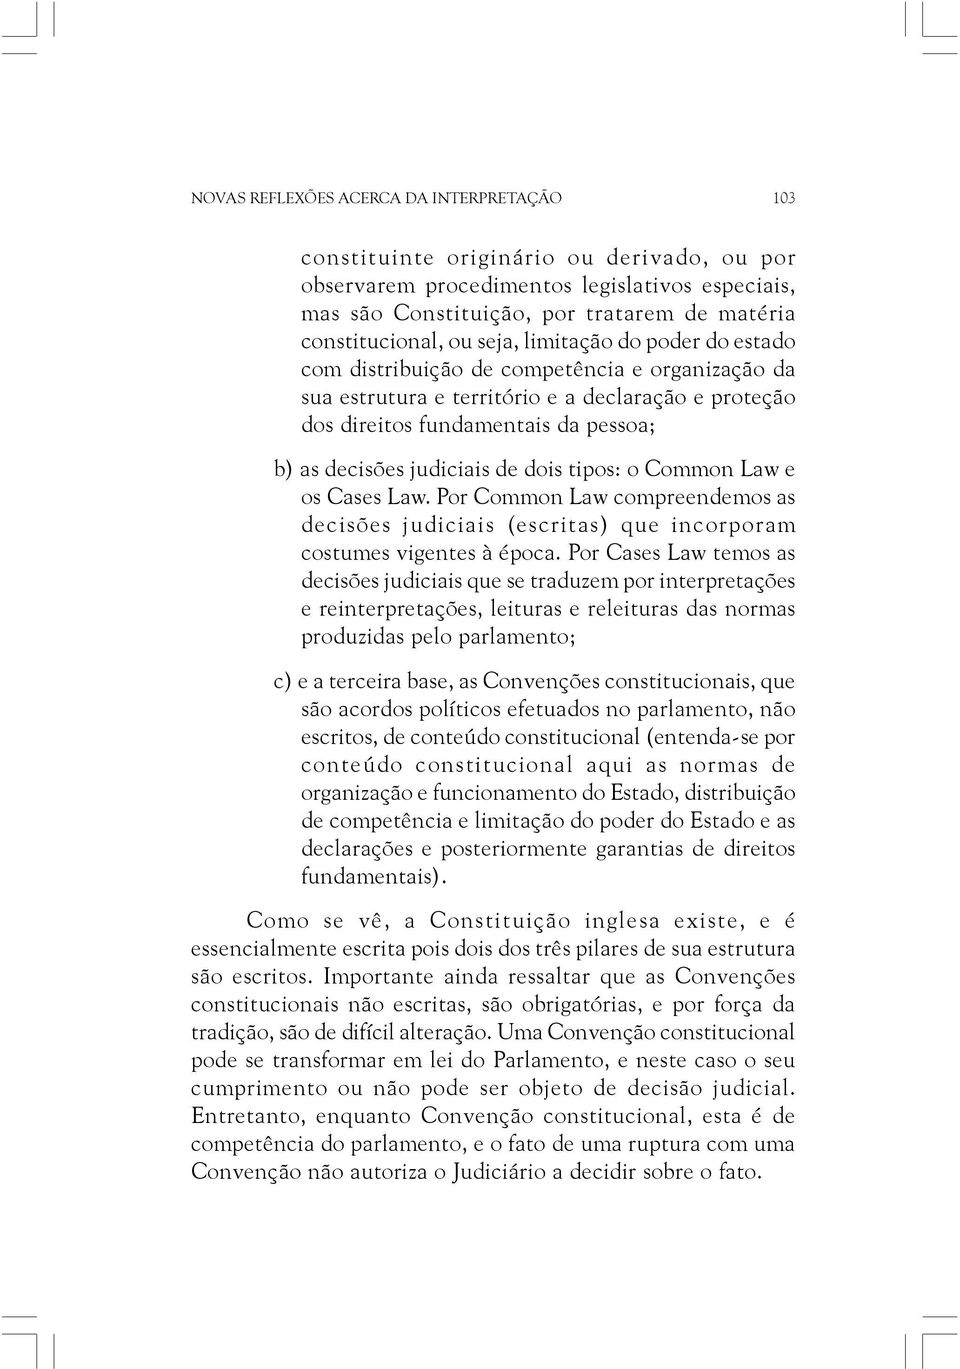 judiciais de dois tipos: o Common Law e os Cases Law. Por Common Law compreendemos as decisões judiciais (escritas) que incorporam costumes vigentes à época.